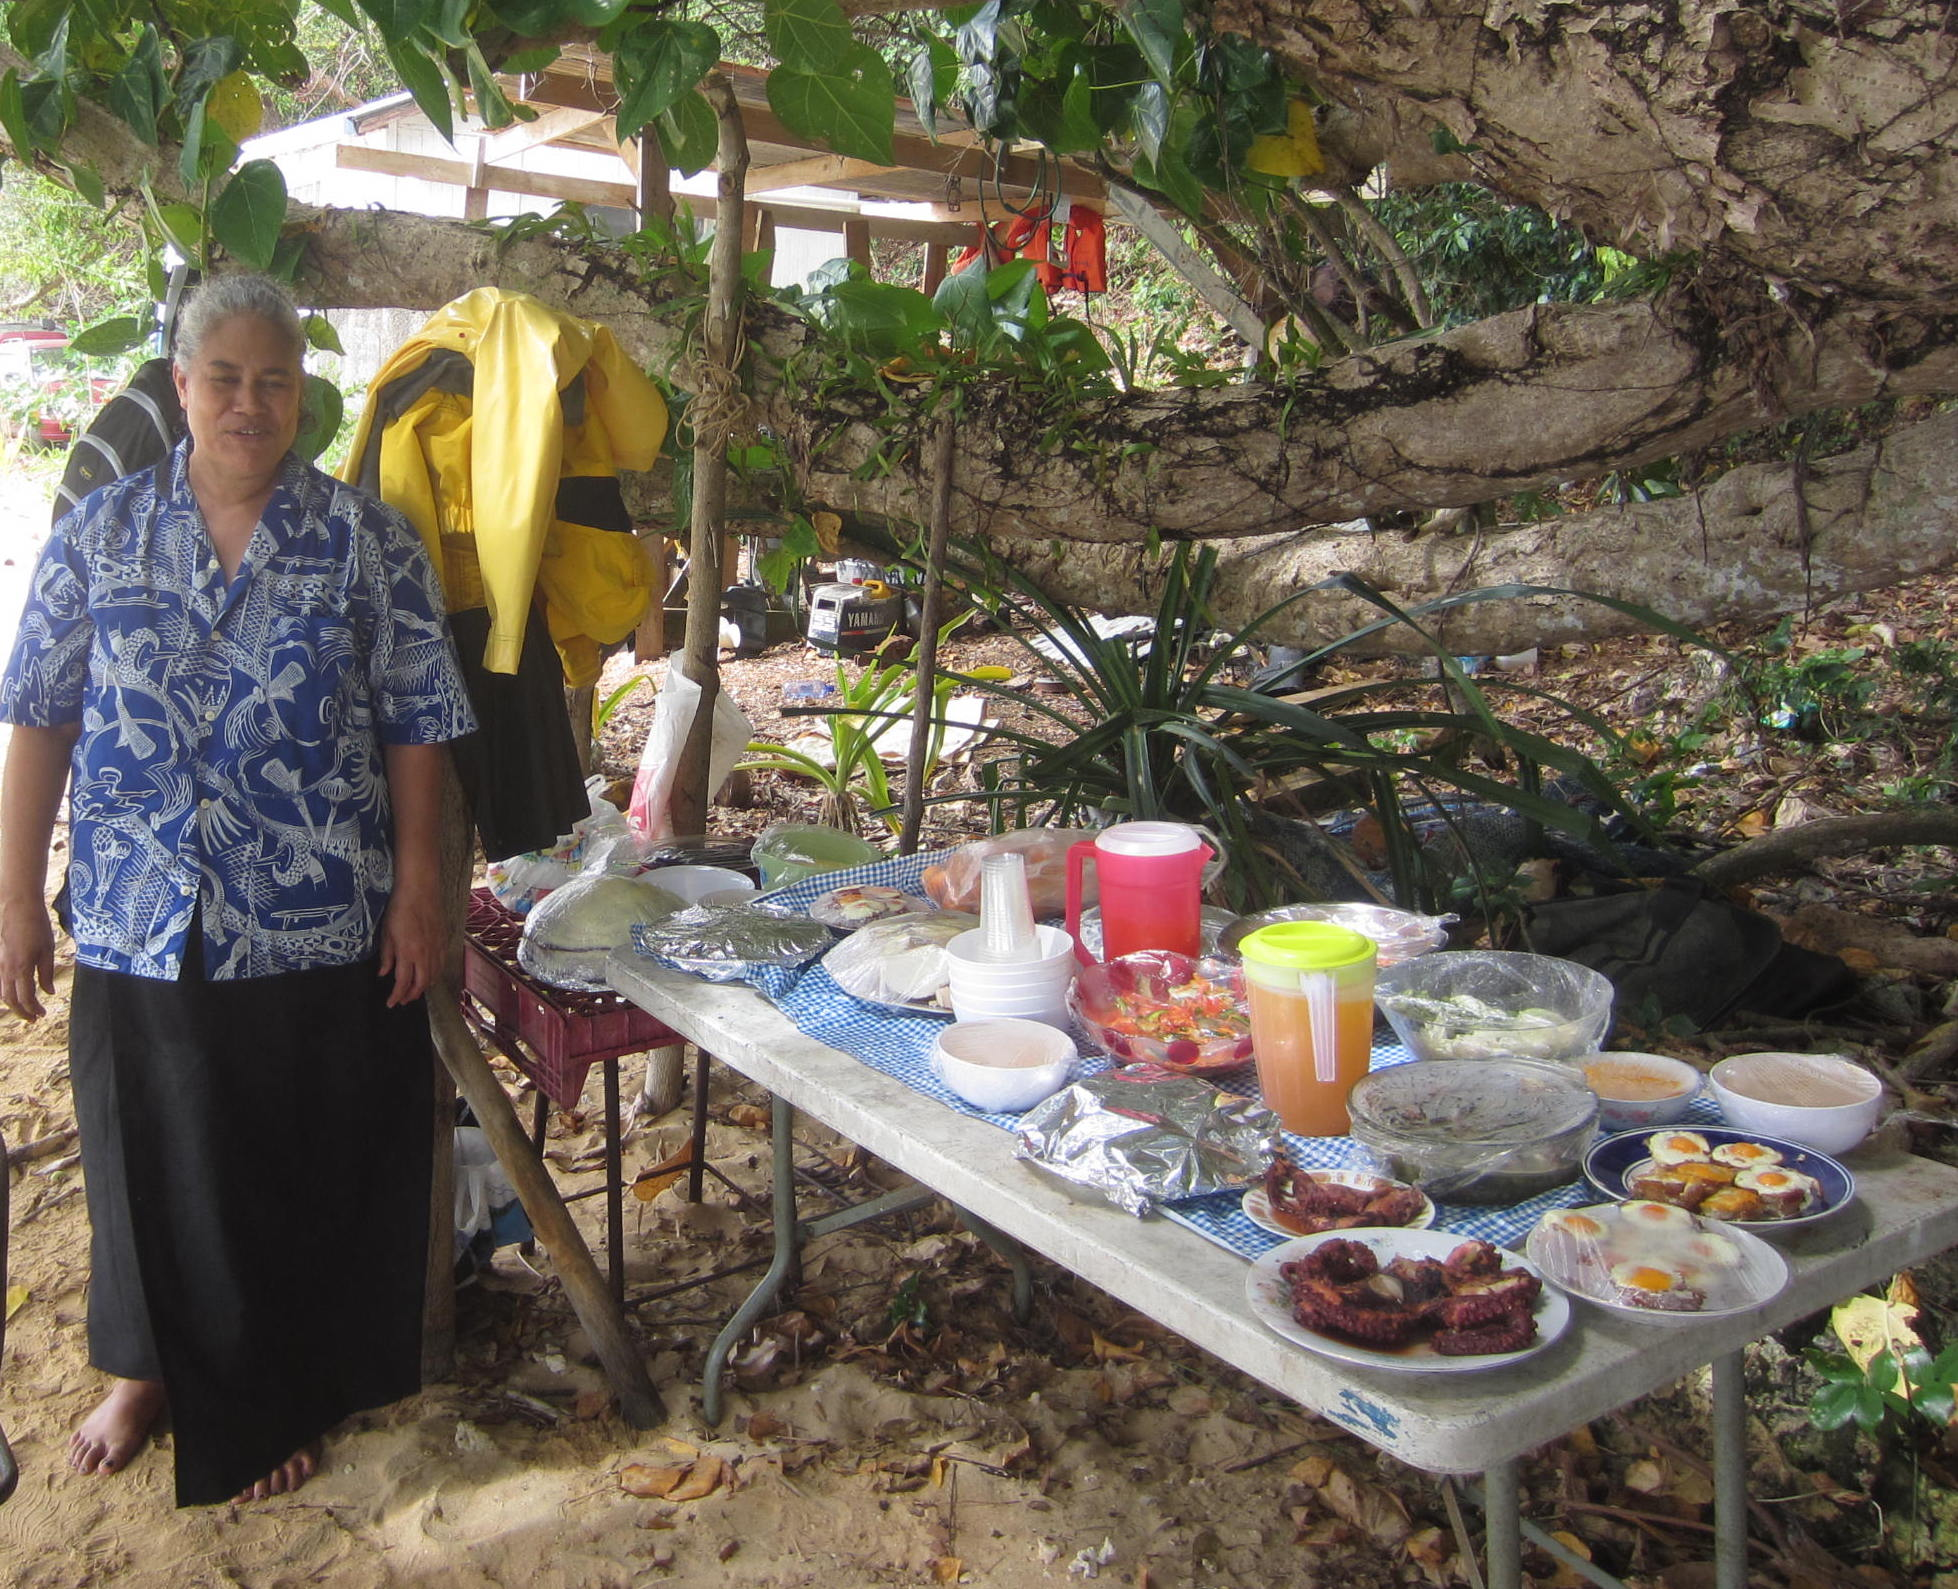 41. Ana prepared a traditional Tongan feast for us. It was truly a magnificent spread of all types of meats, fish, vegetables, and fruit!